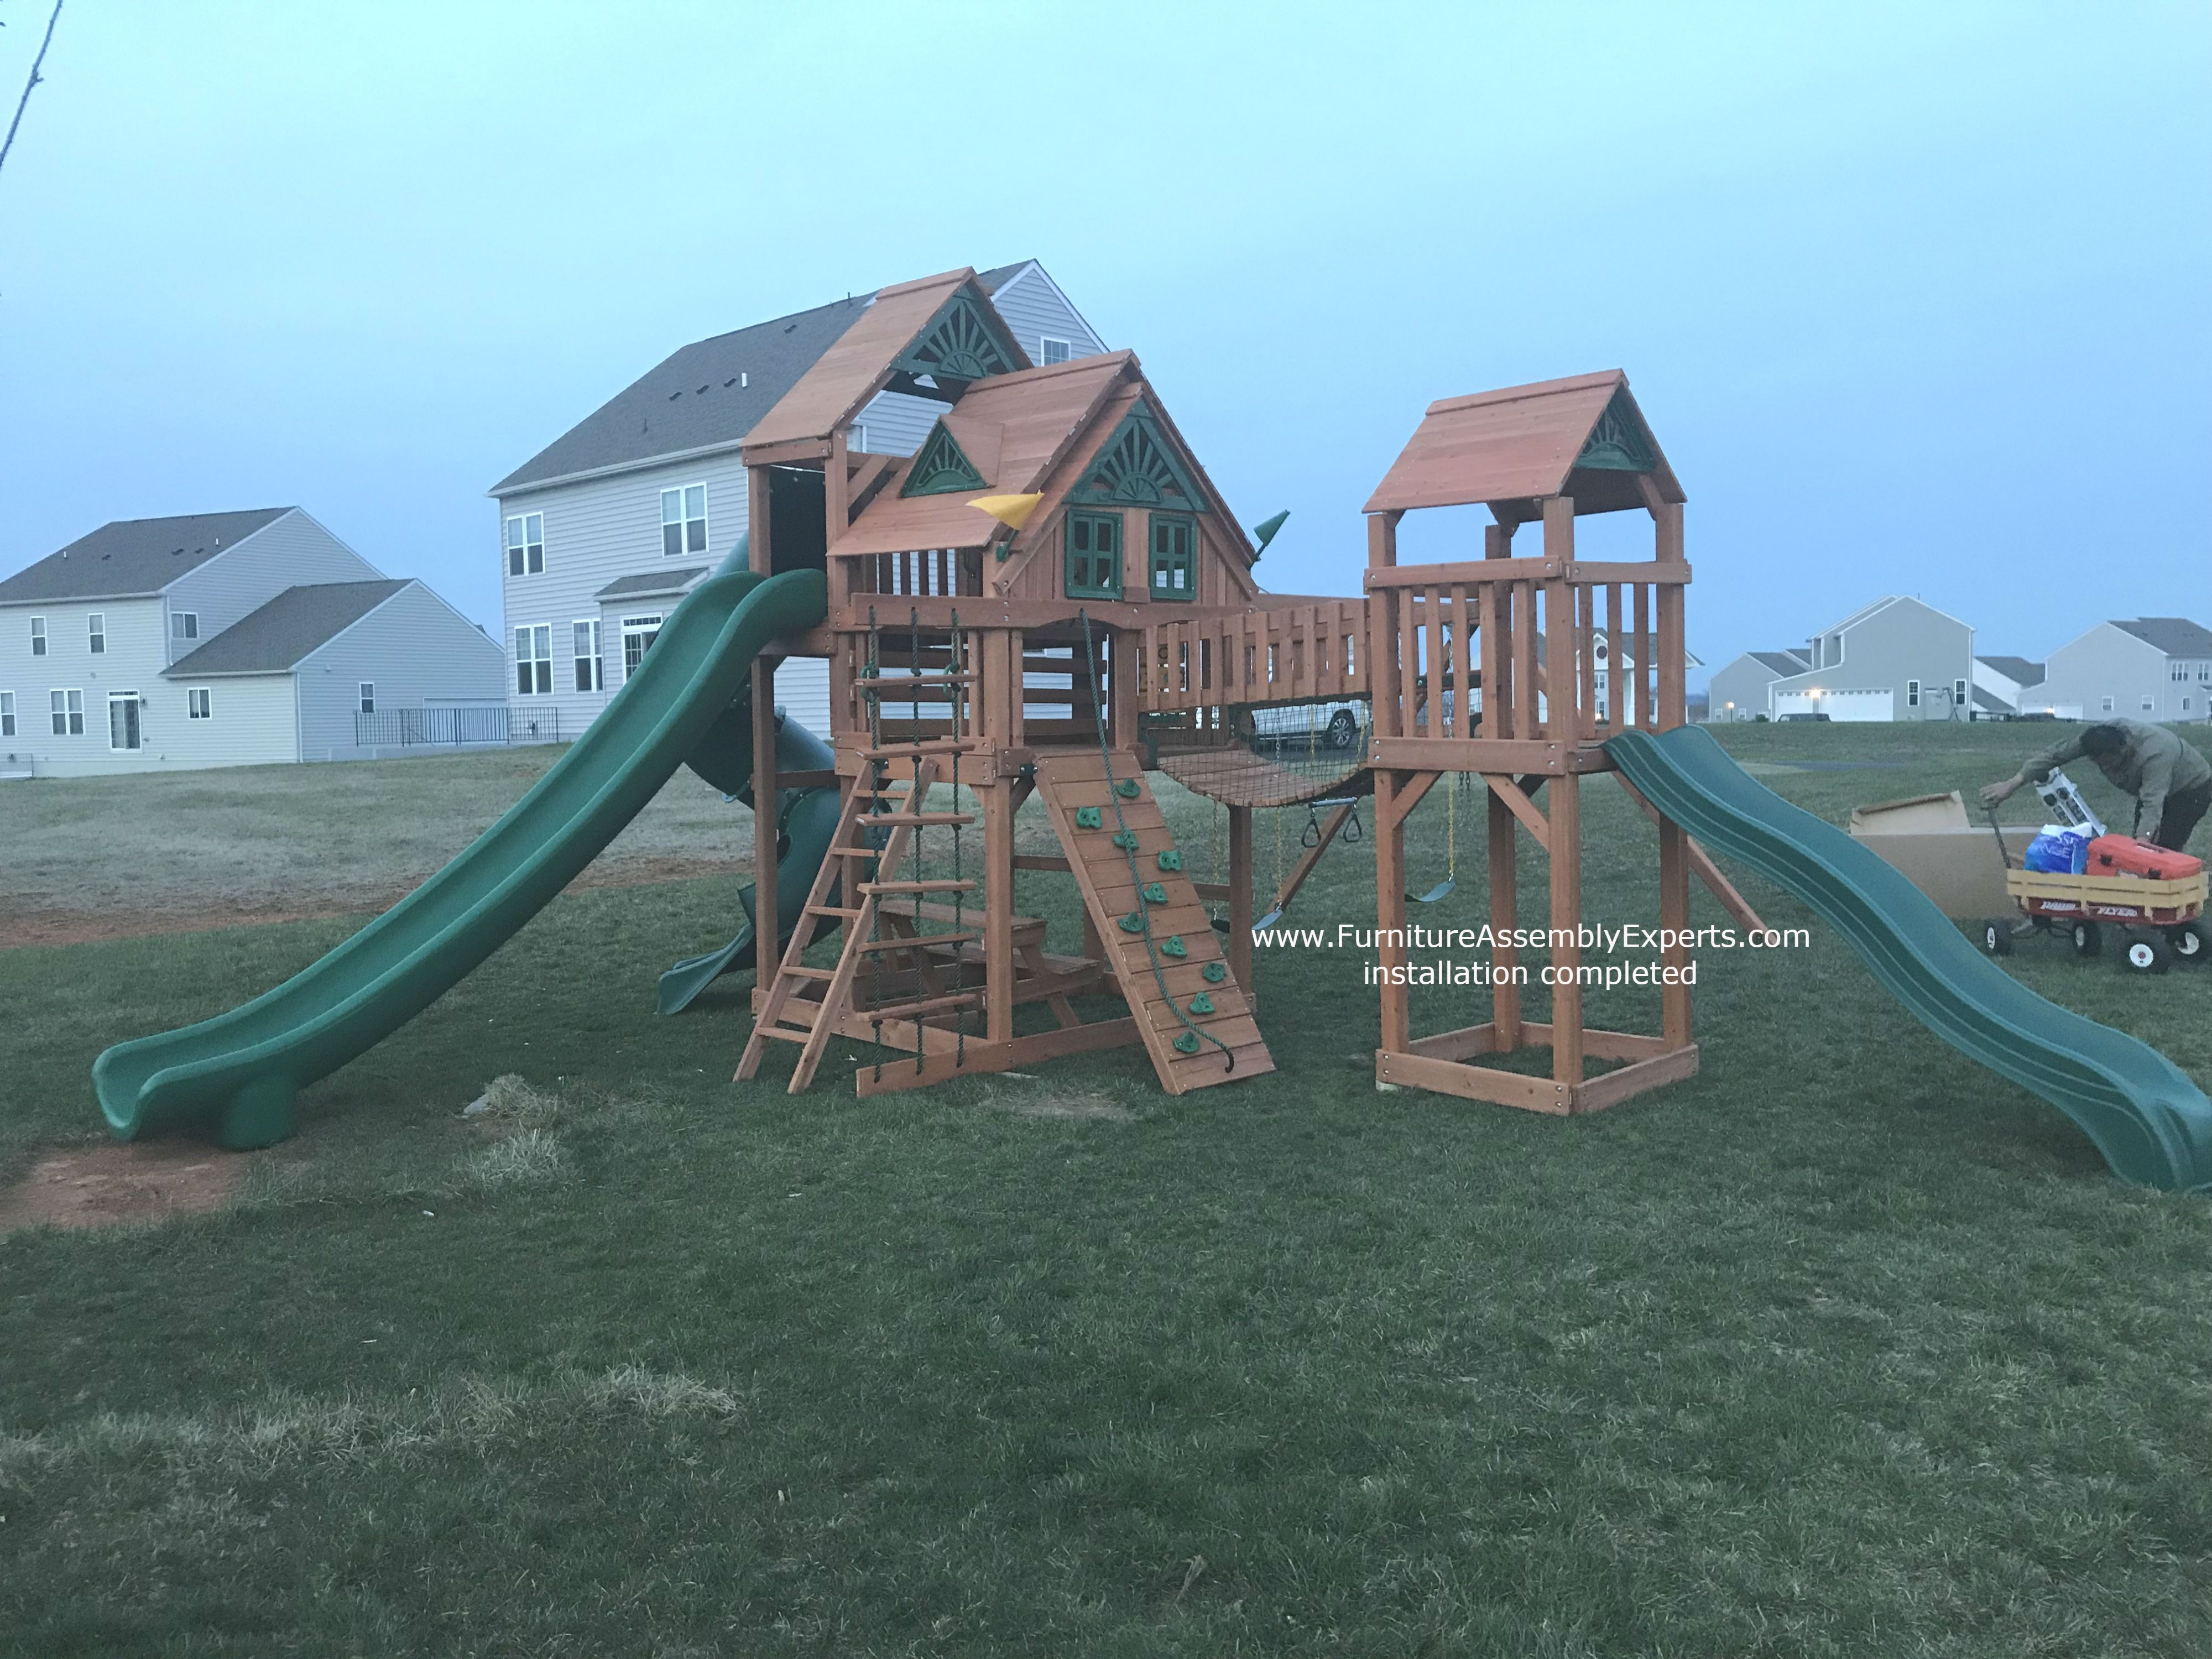 Gorilla Playsets Treasure Trove Swing Set w/ Timber Shield ...